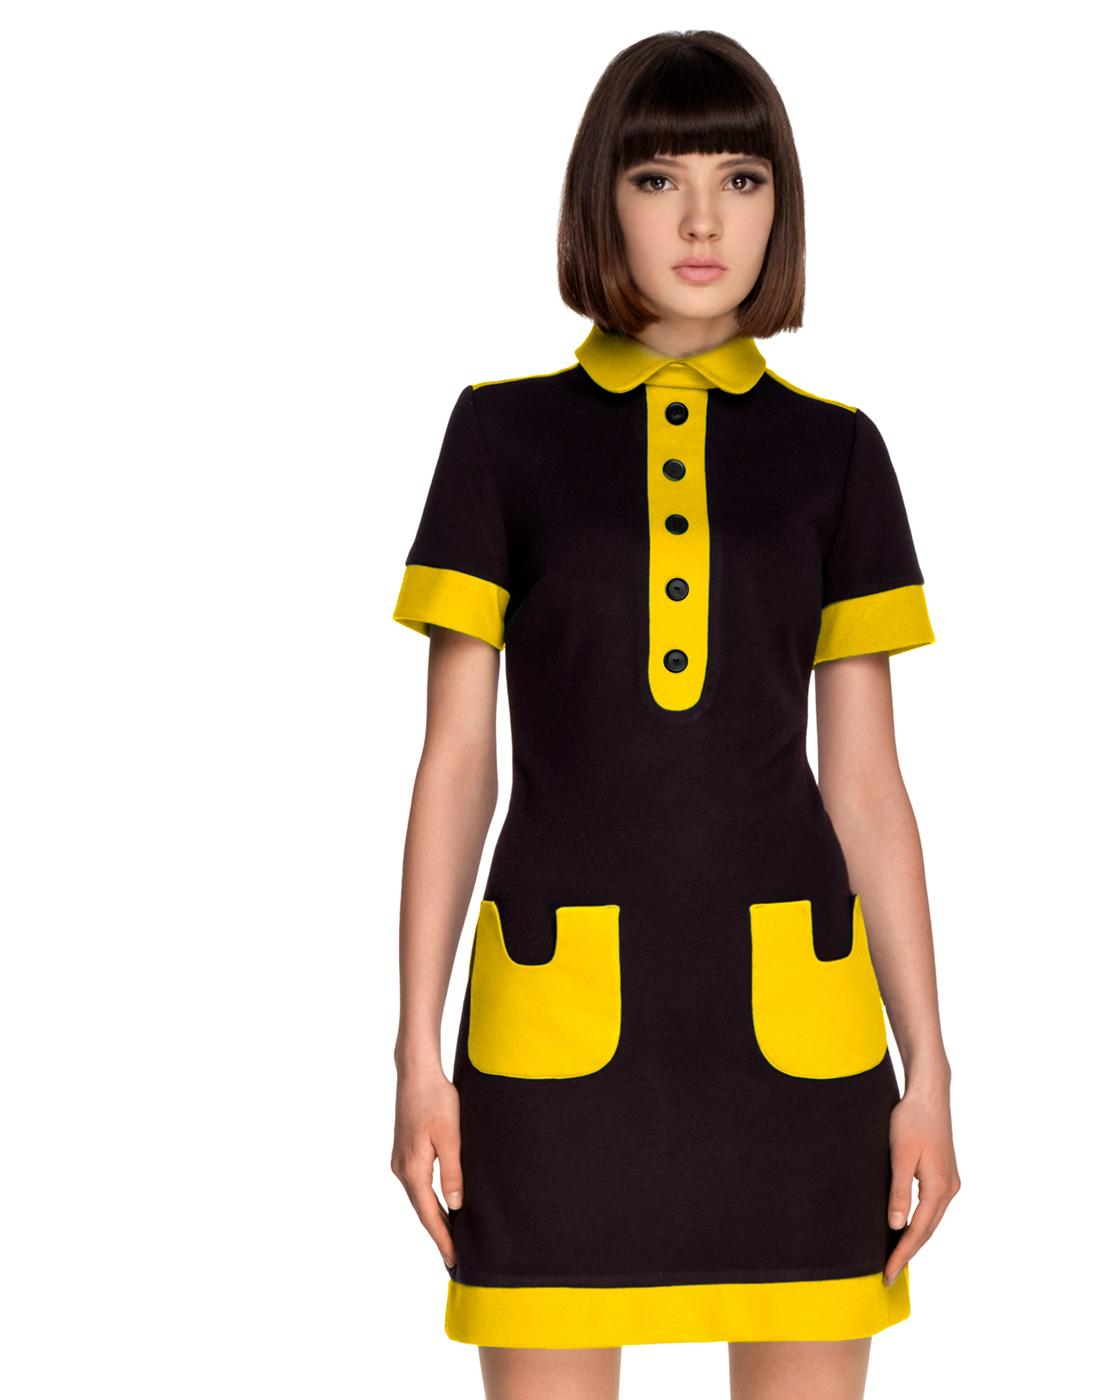 MARMALADE 1960s Mod Contrast Pocket Polo Dress B/Y